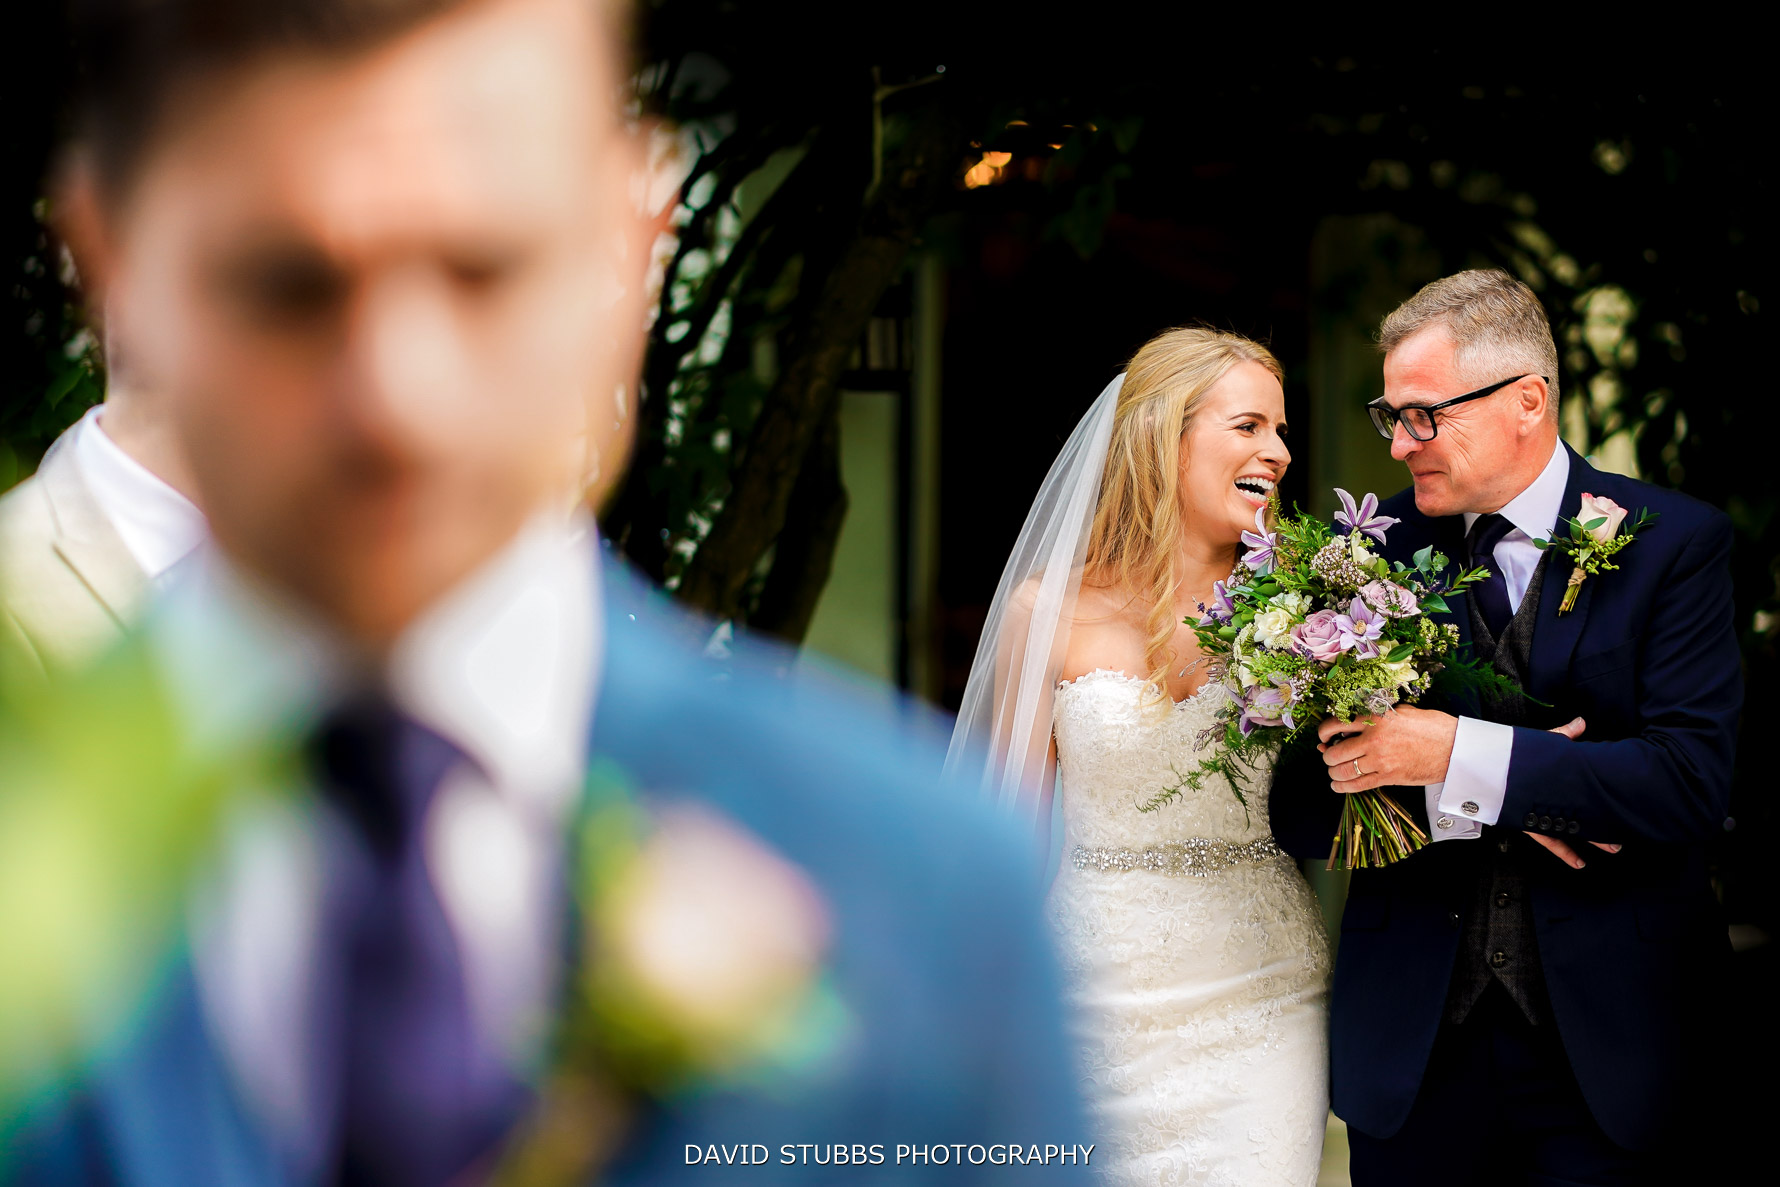 bride and dad together as they walk down the isle for the wedding